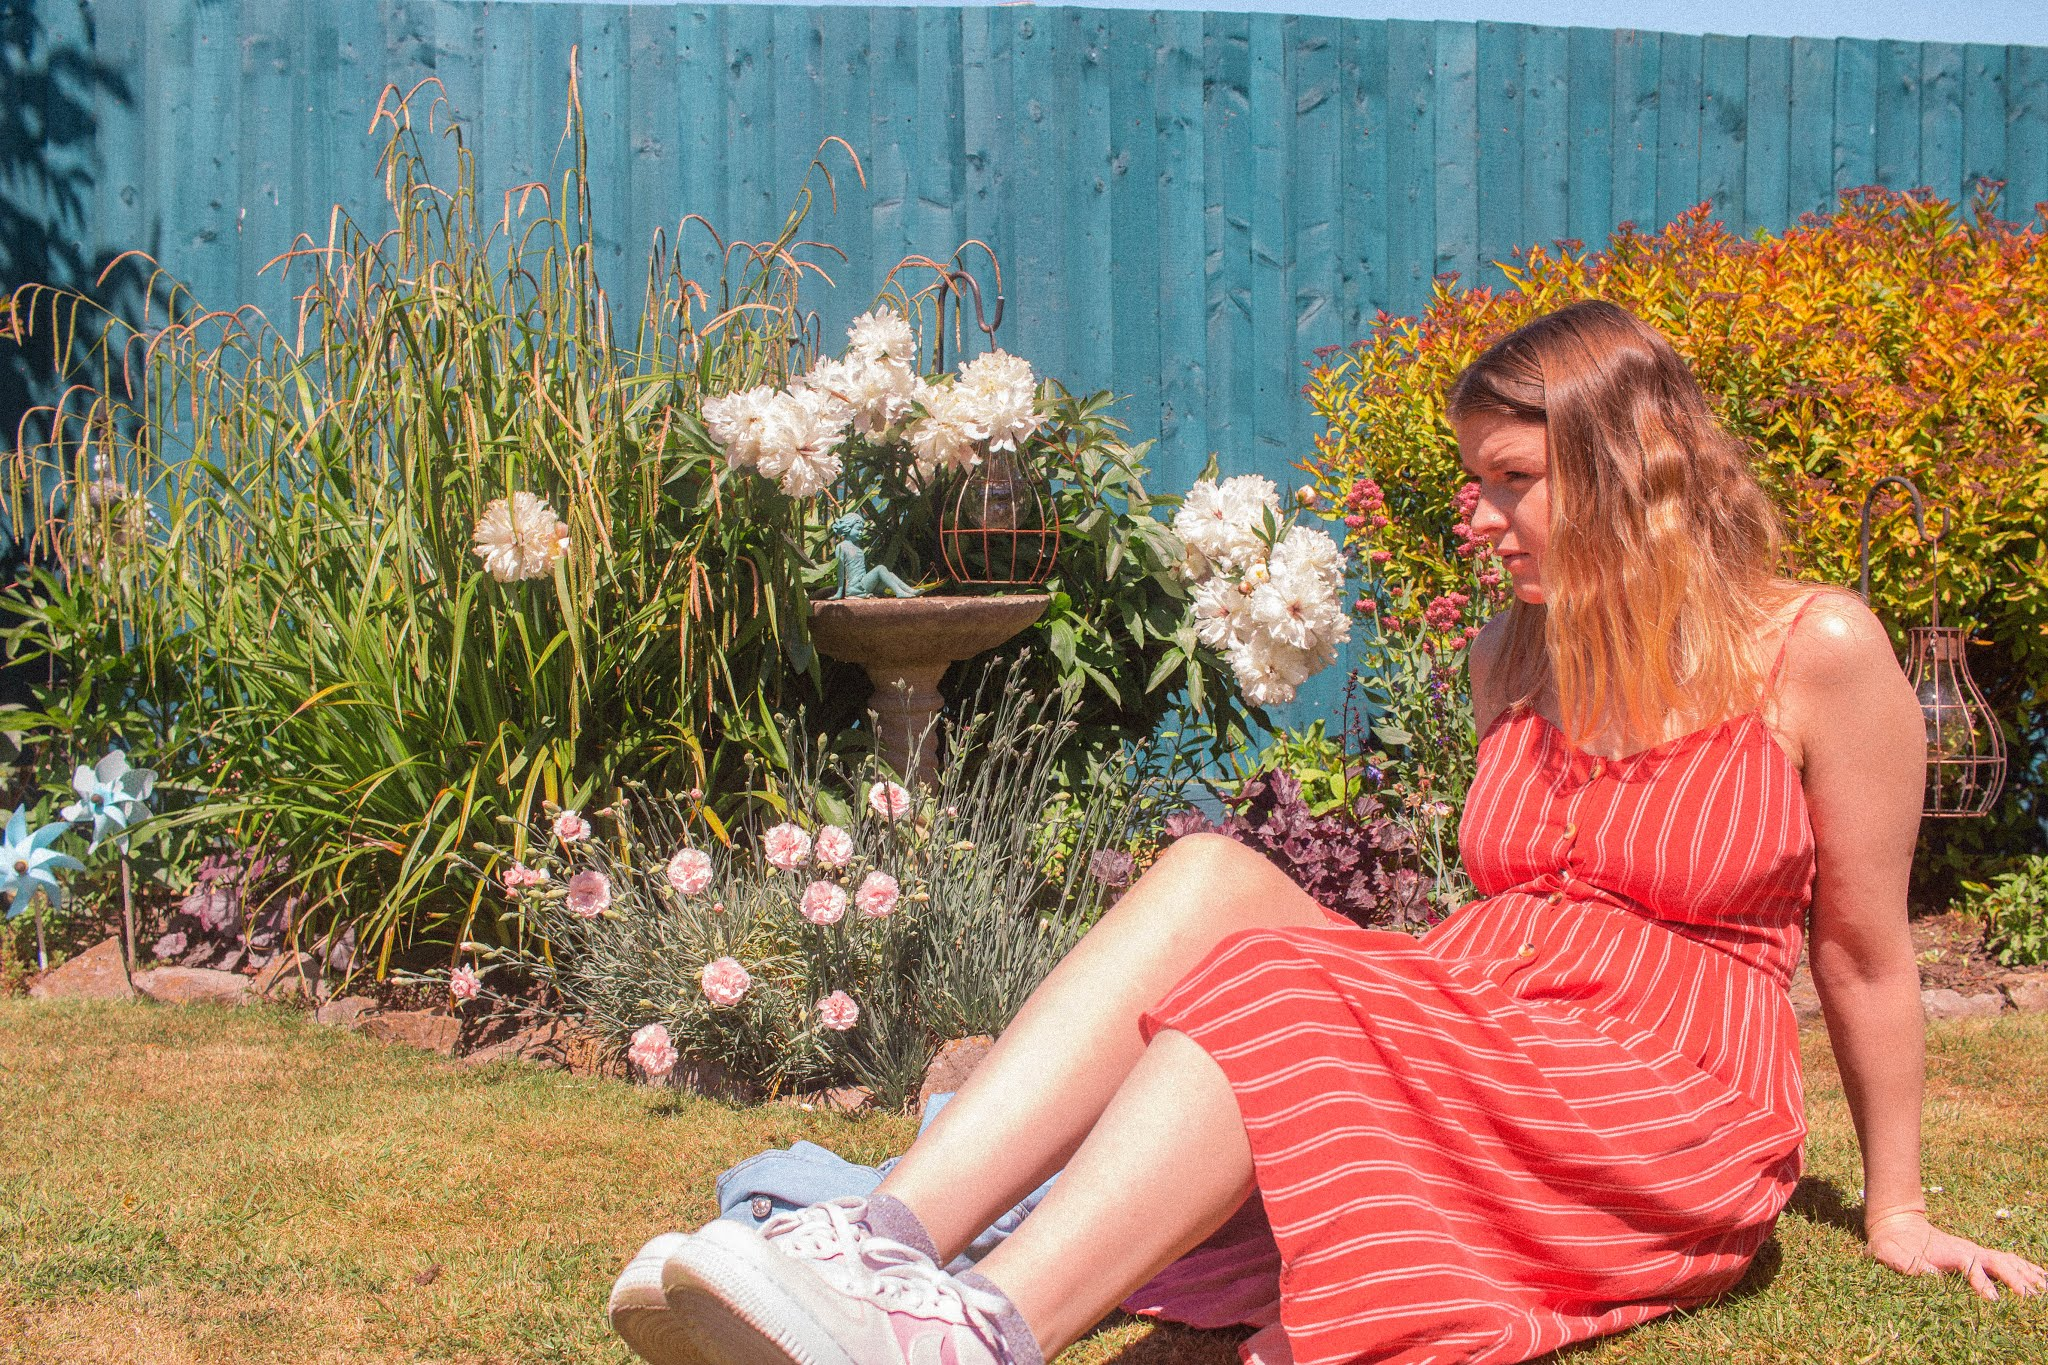 girl wearing red dress in flower garden - fashion blogger tips to enjoy instagram again